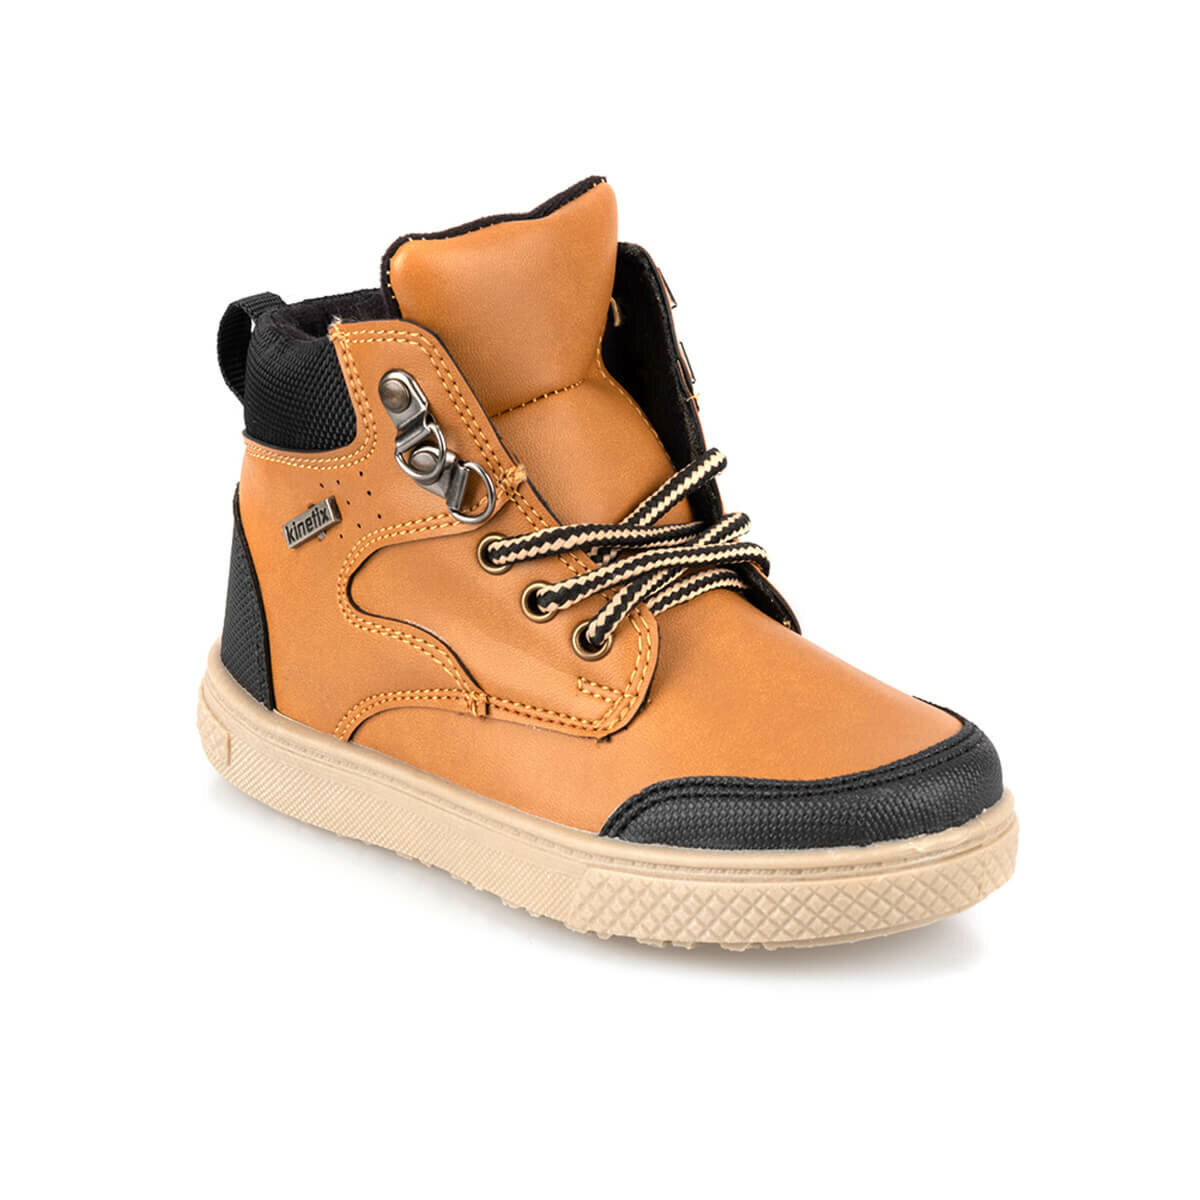 FLO PORCIN HI 9PR Tan Male Child Sneaker Shoes KINETIX